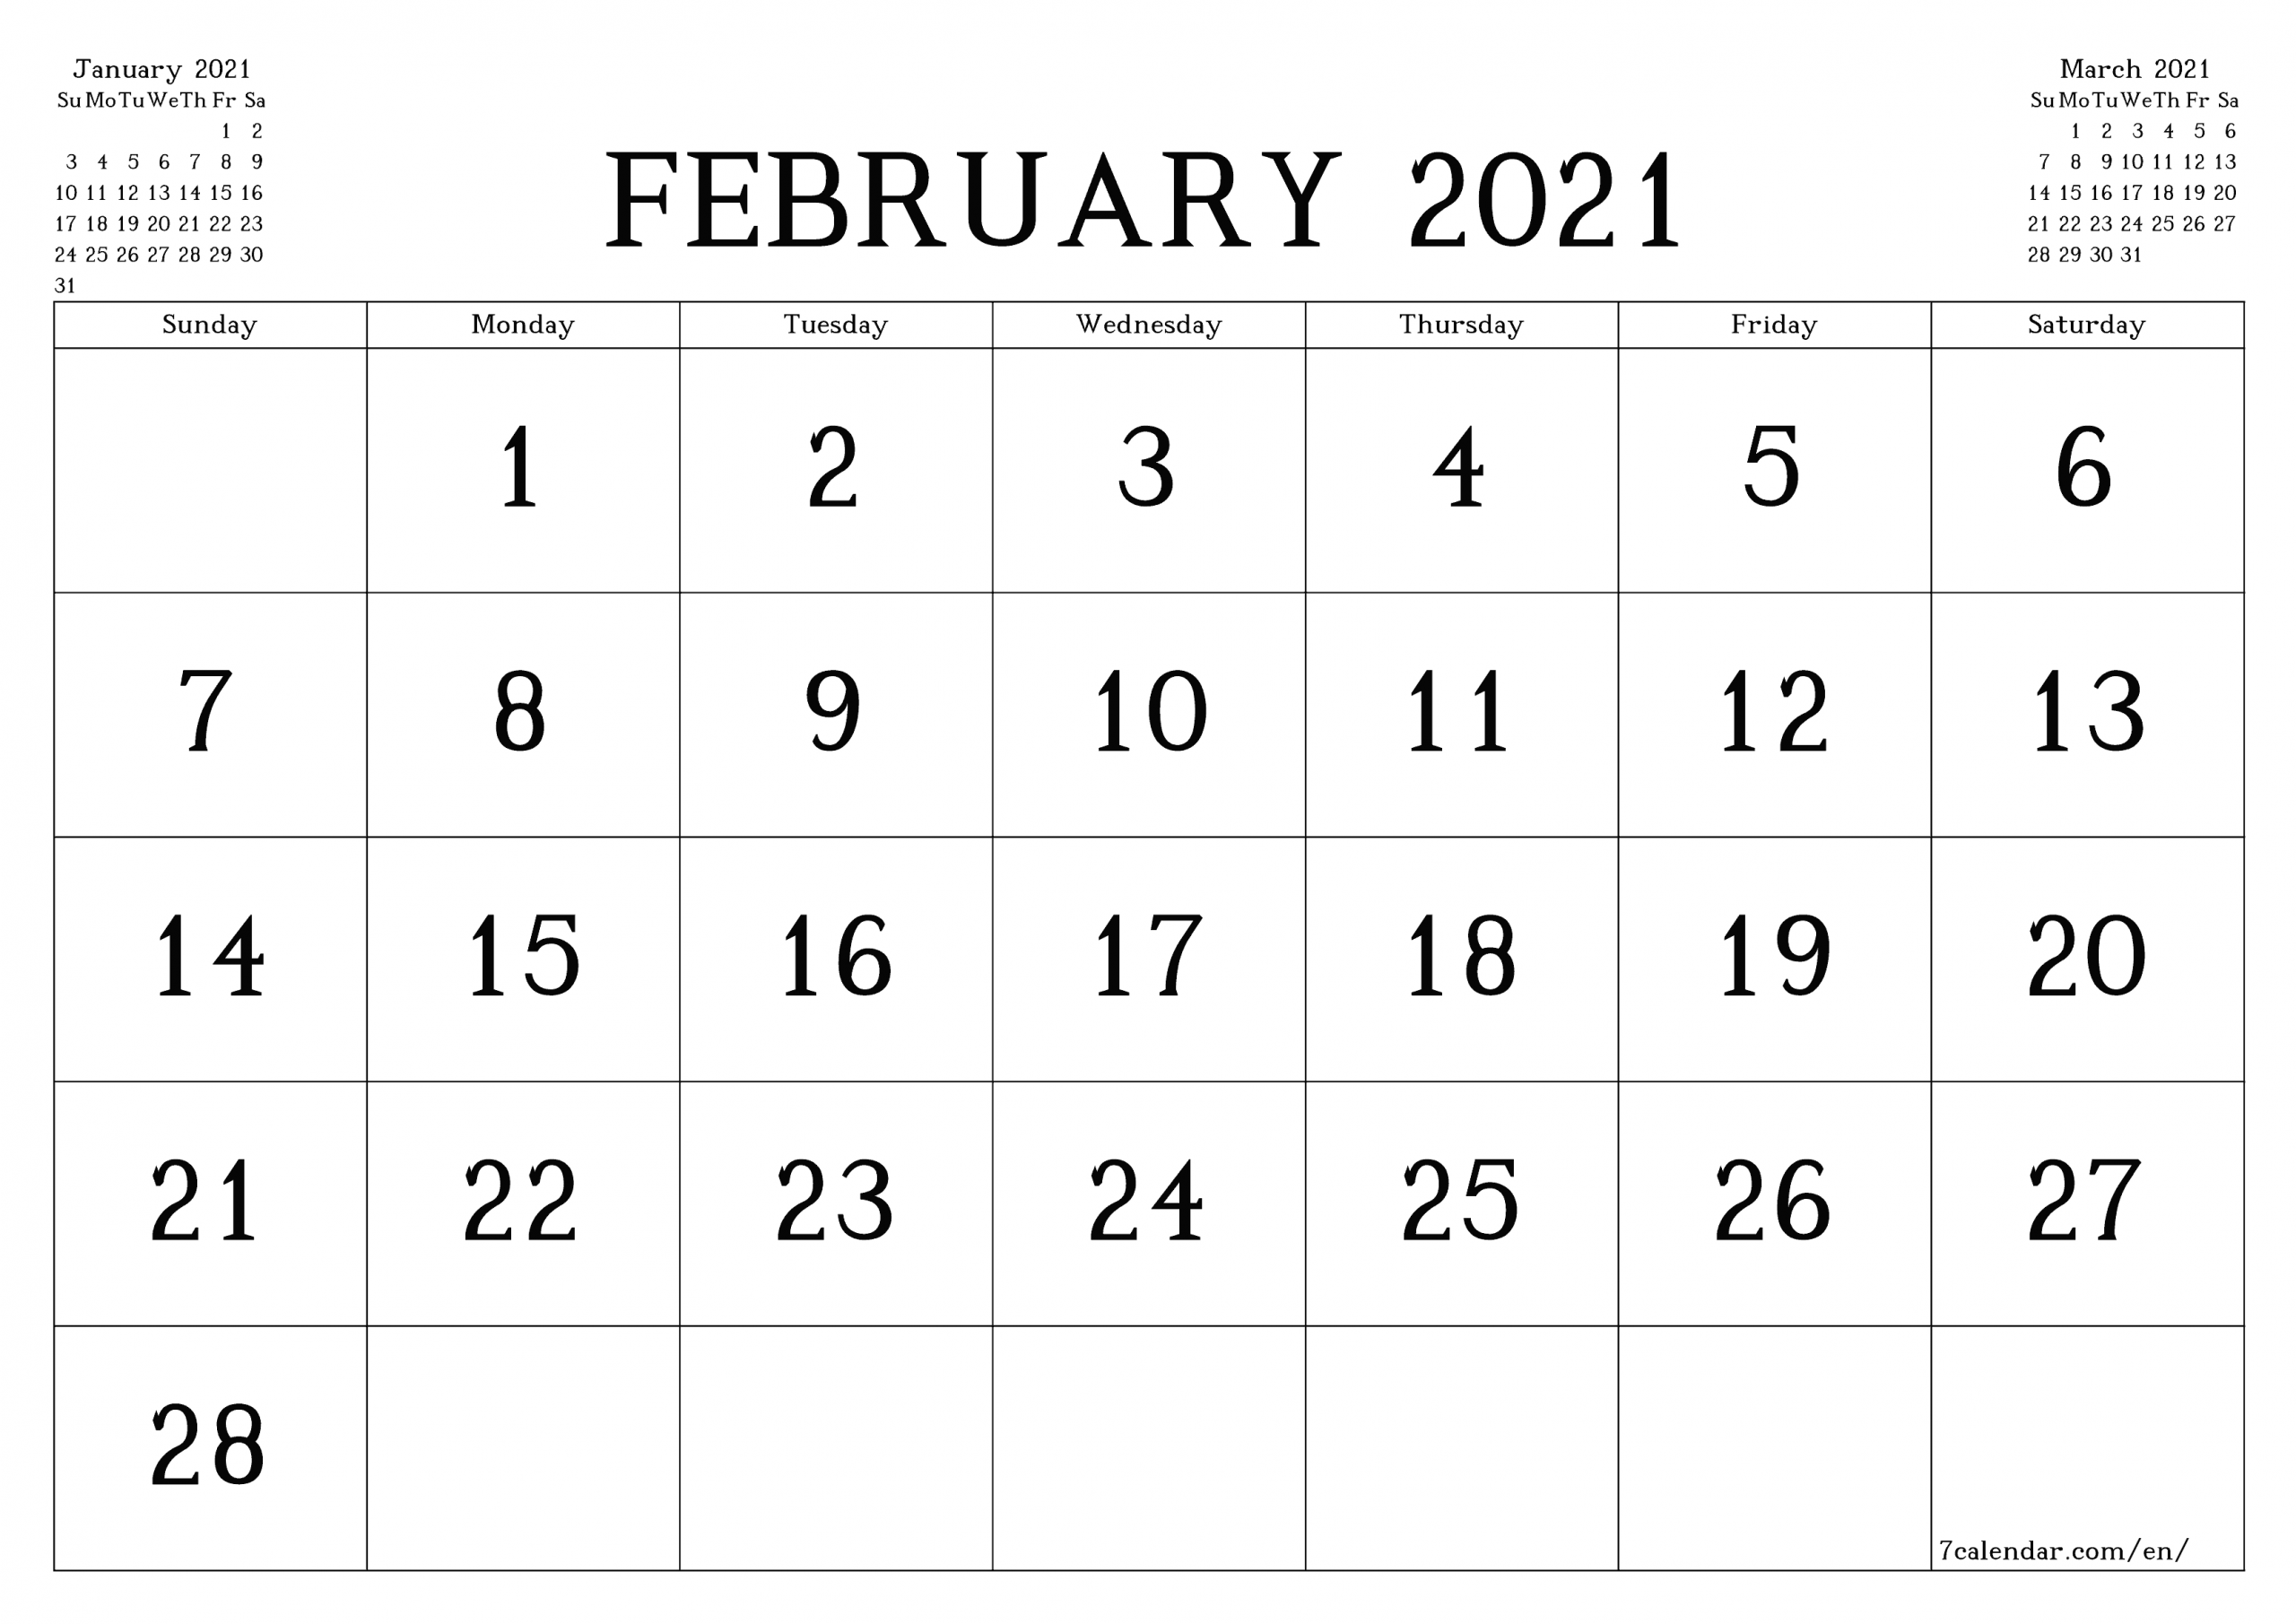 Free Printable Blank Monthly Calendar And Planner For February 2021 - A4, A5 And A3 Pdf And Png